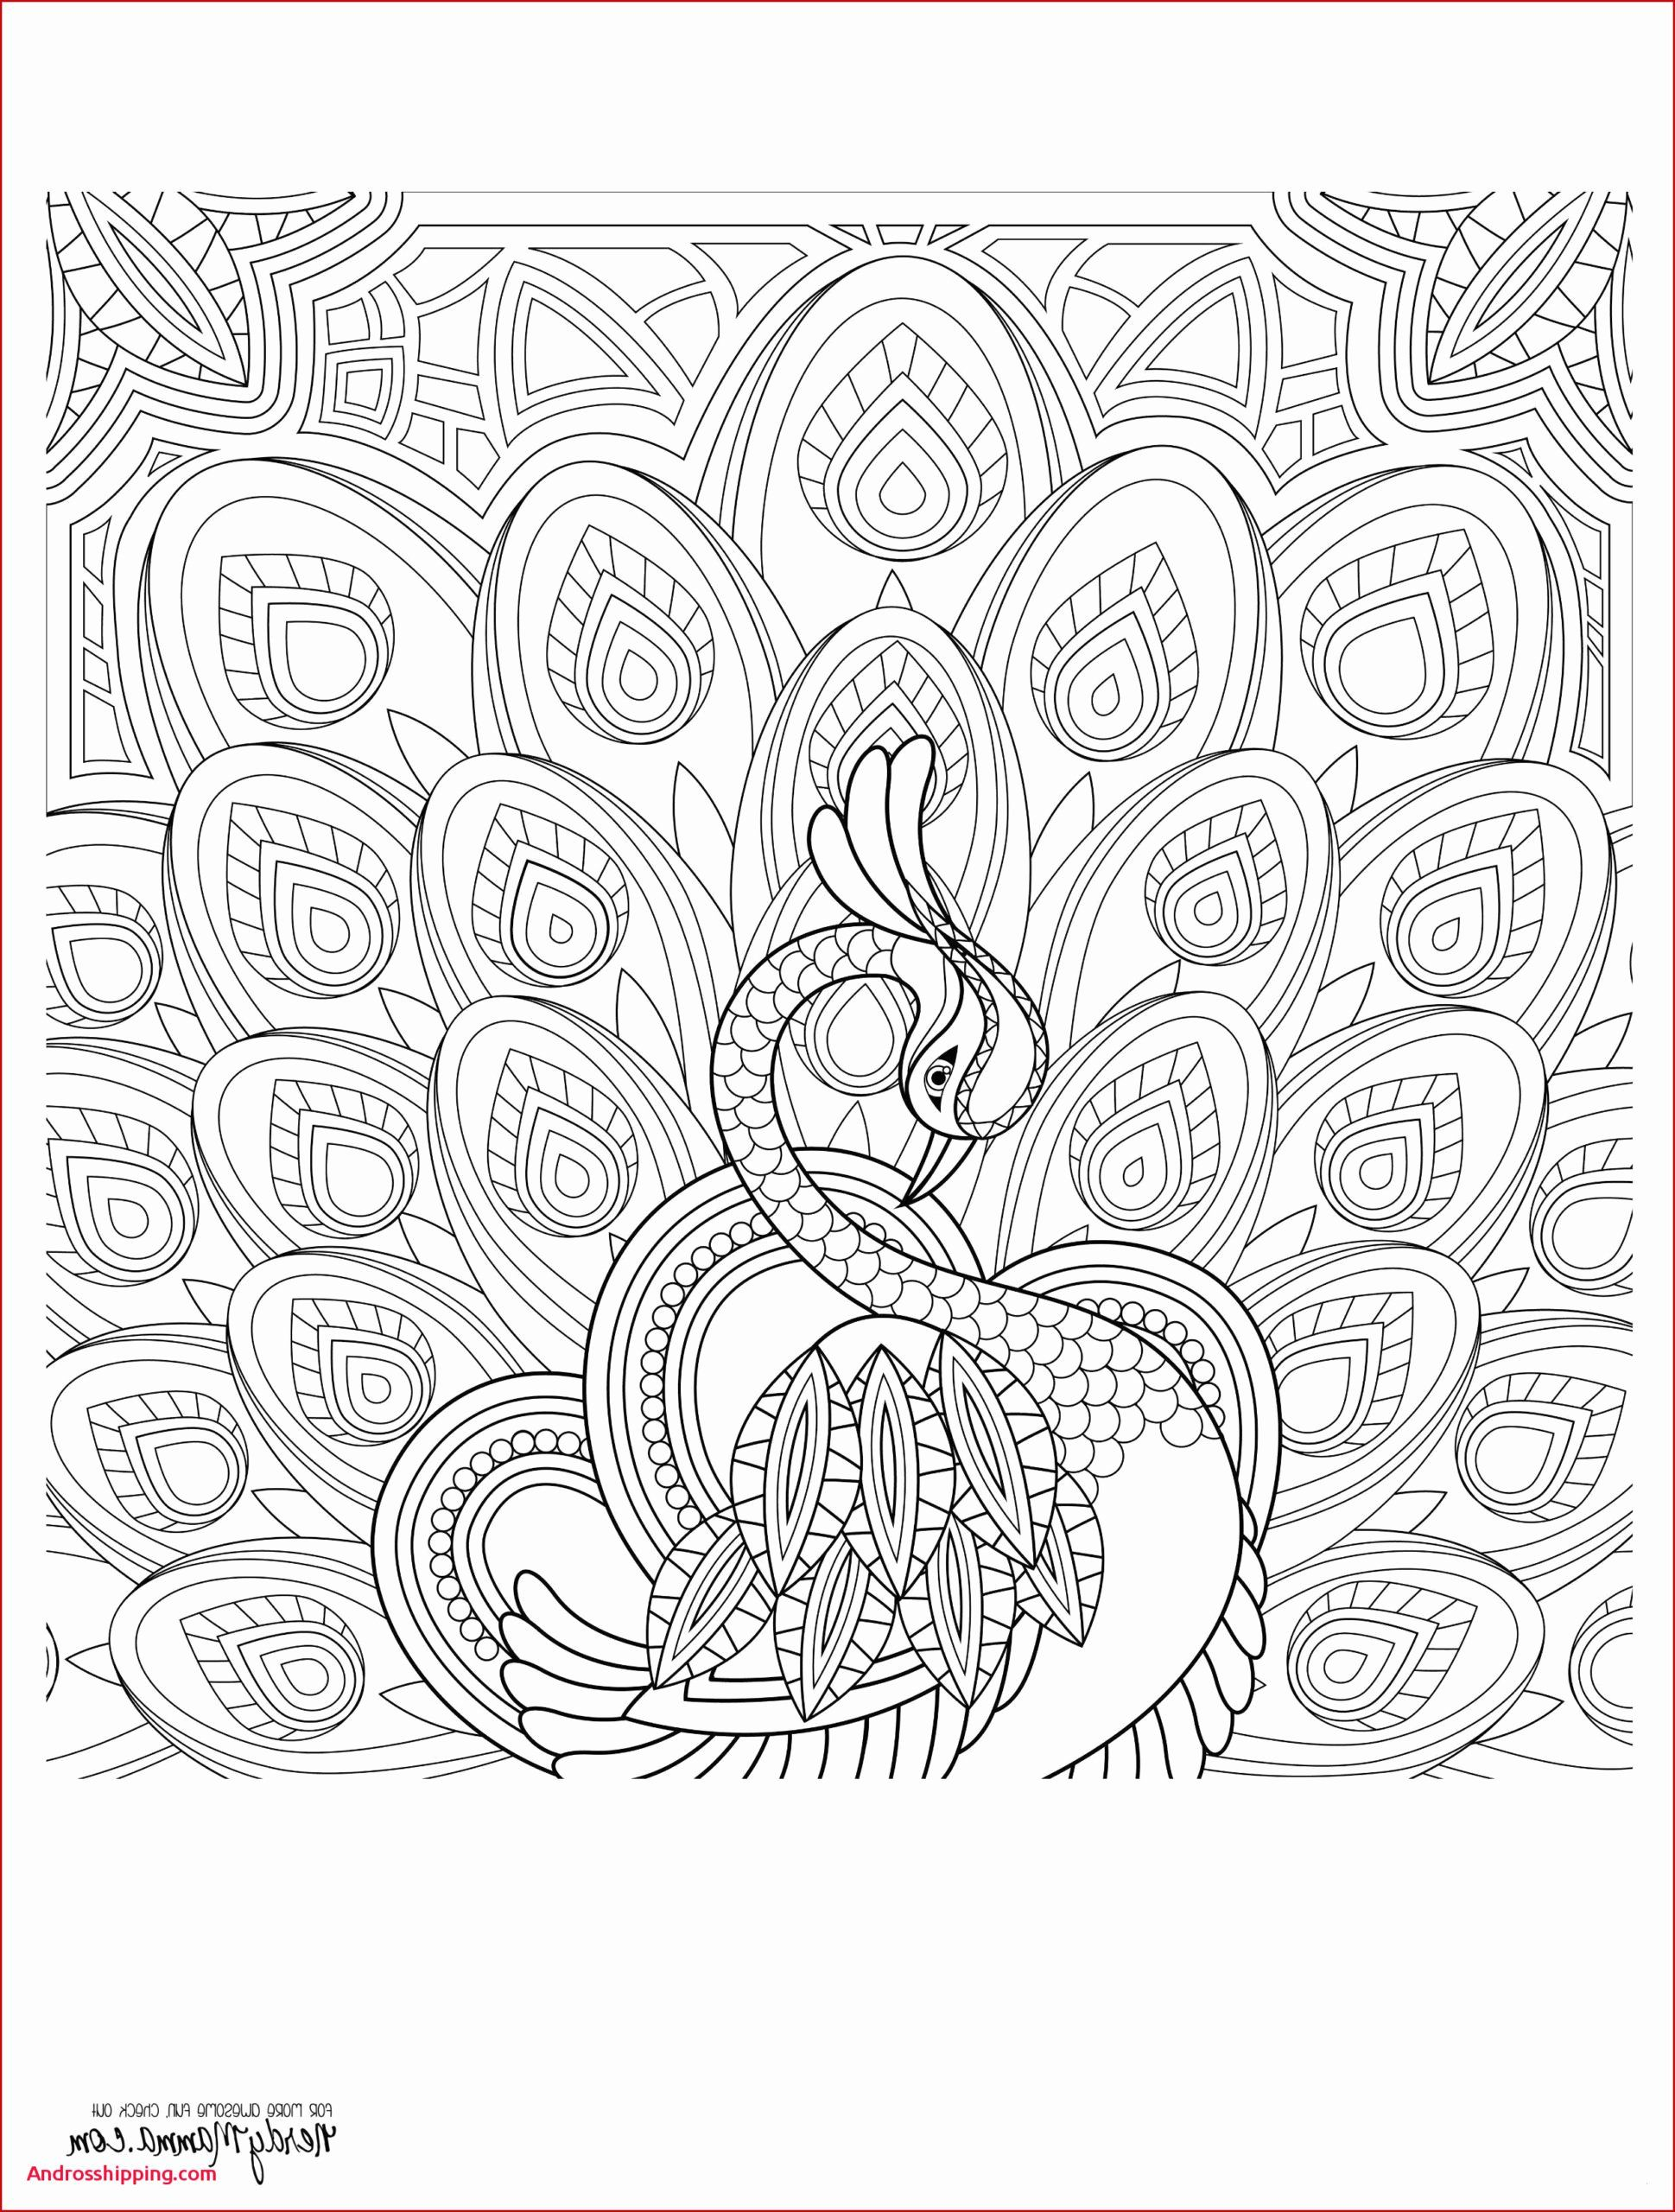 Color By Number Printable For Adults Beautiful Coloring Pages Bathroom Free Color By Space Coloring Pages Merry Christmas Coloring Pages Online Coloring Pages